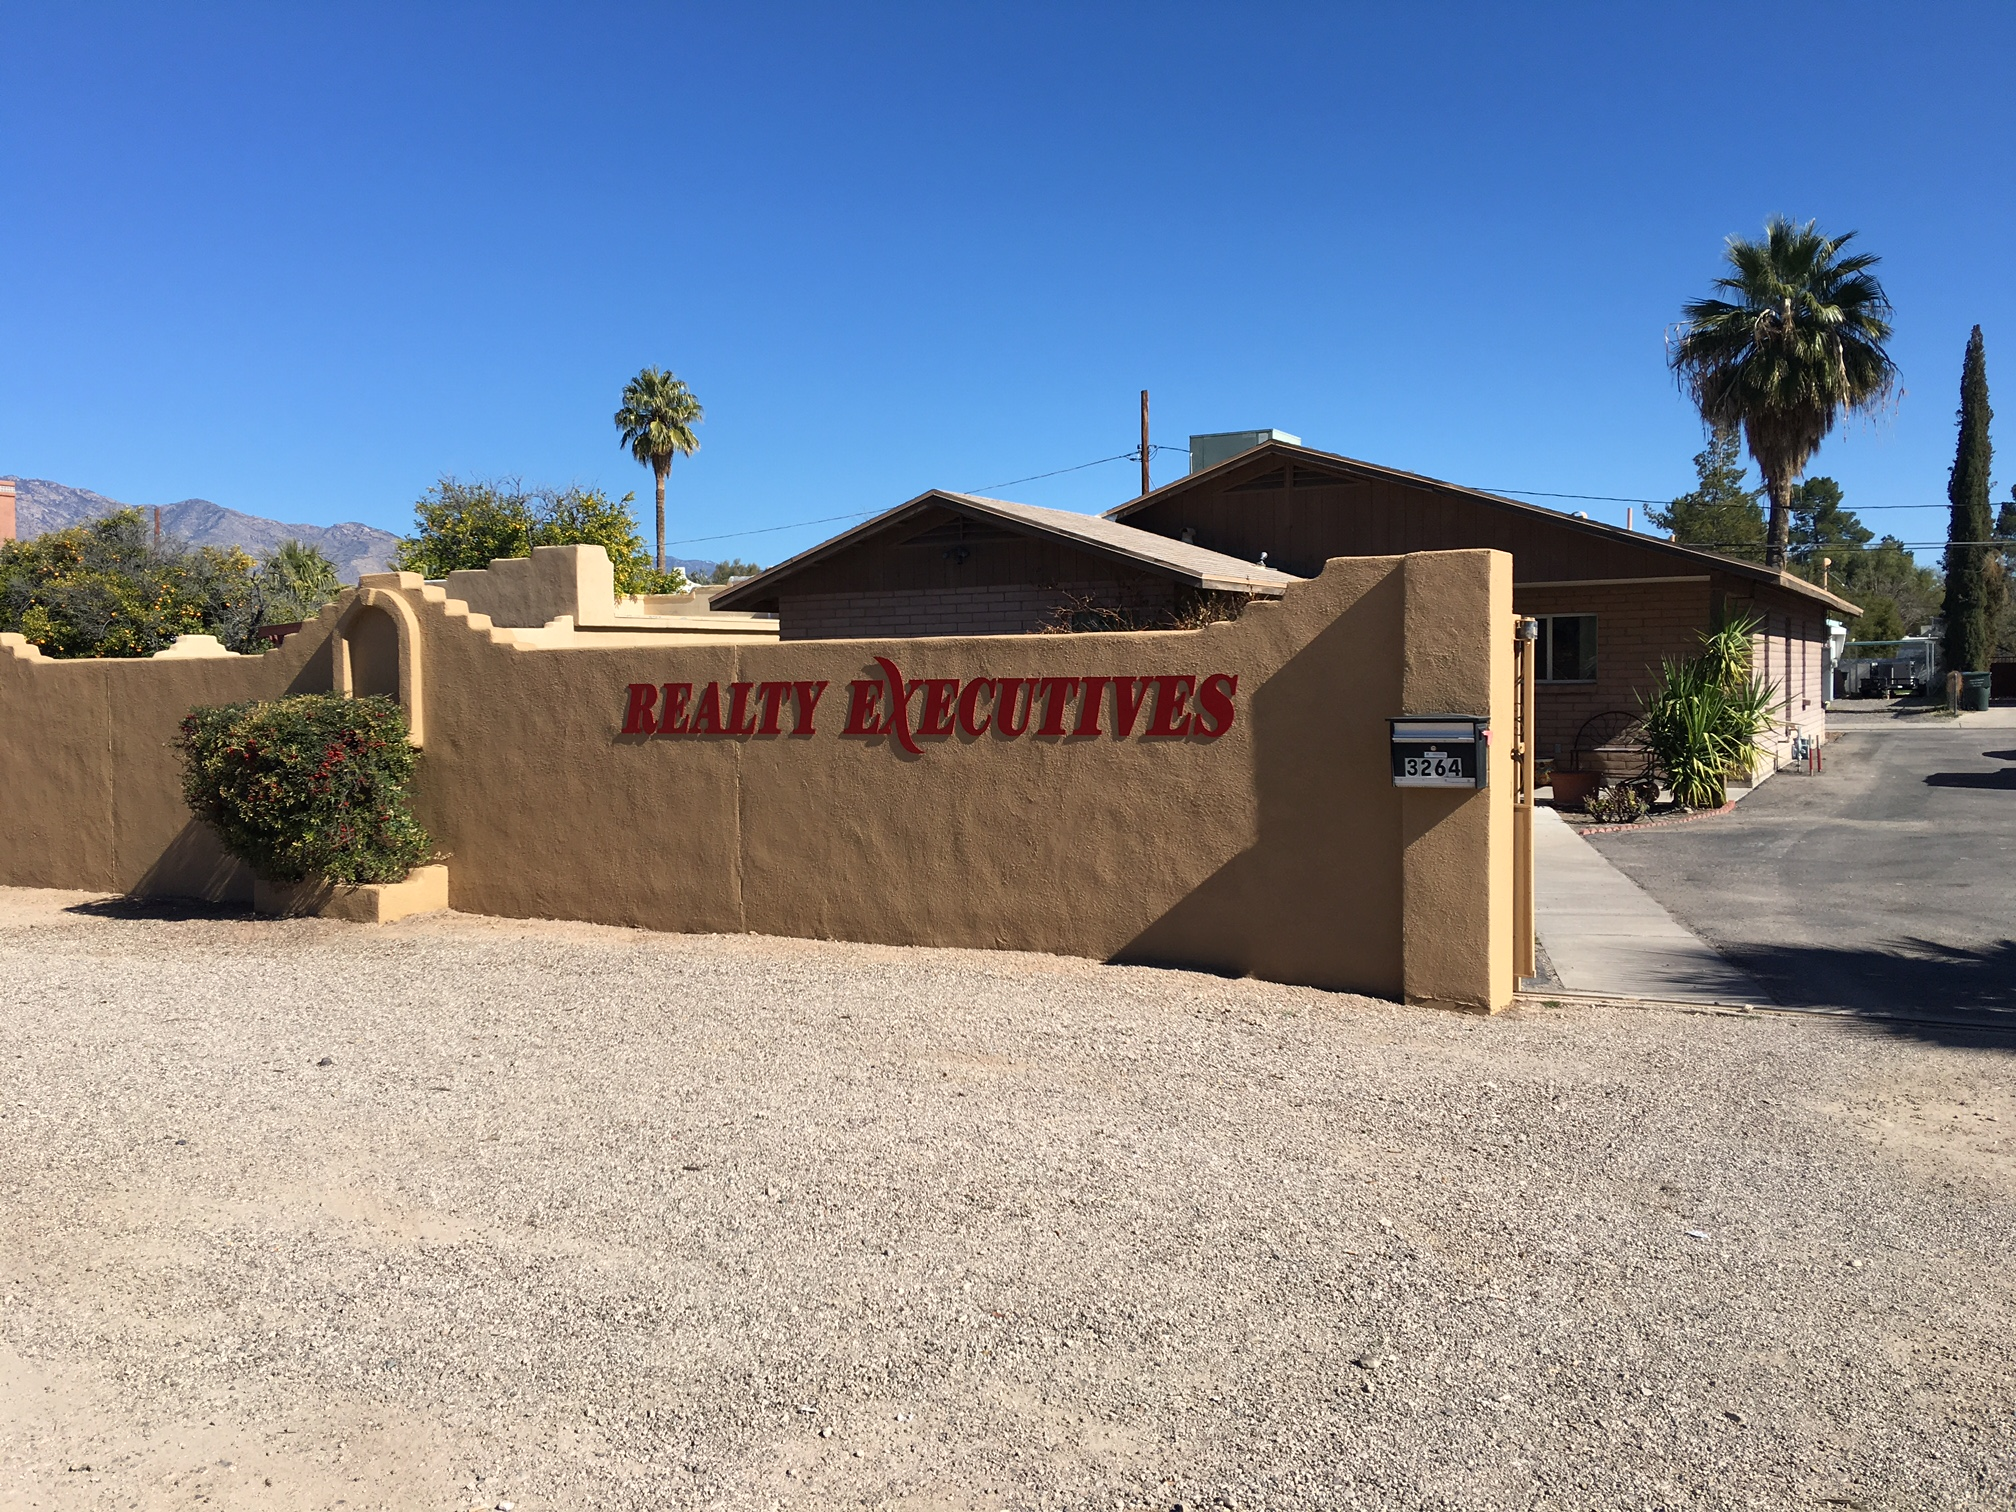 Realty Executives Tucson Elite (Country Club)